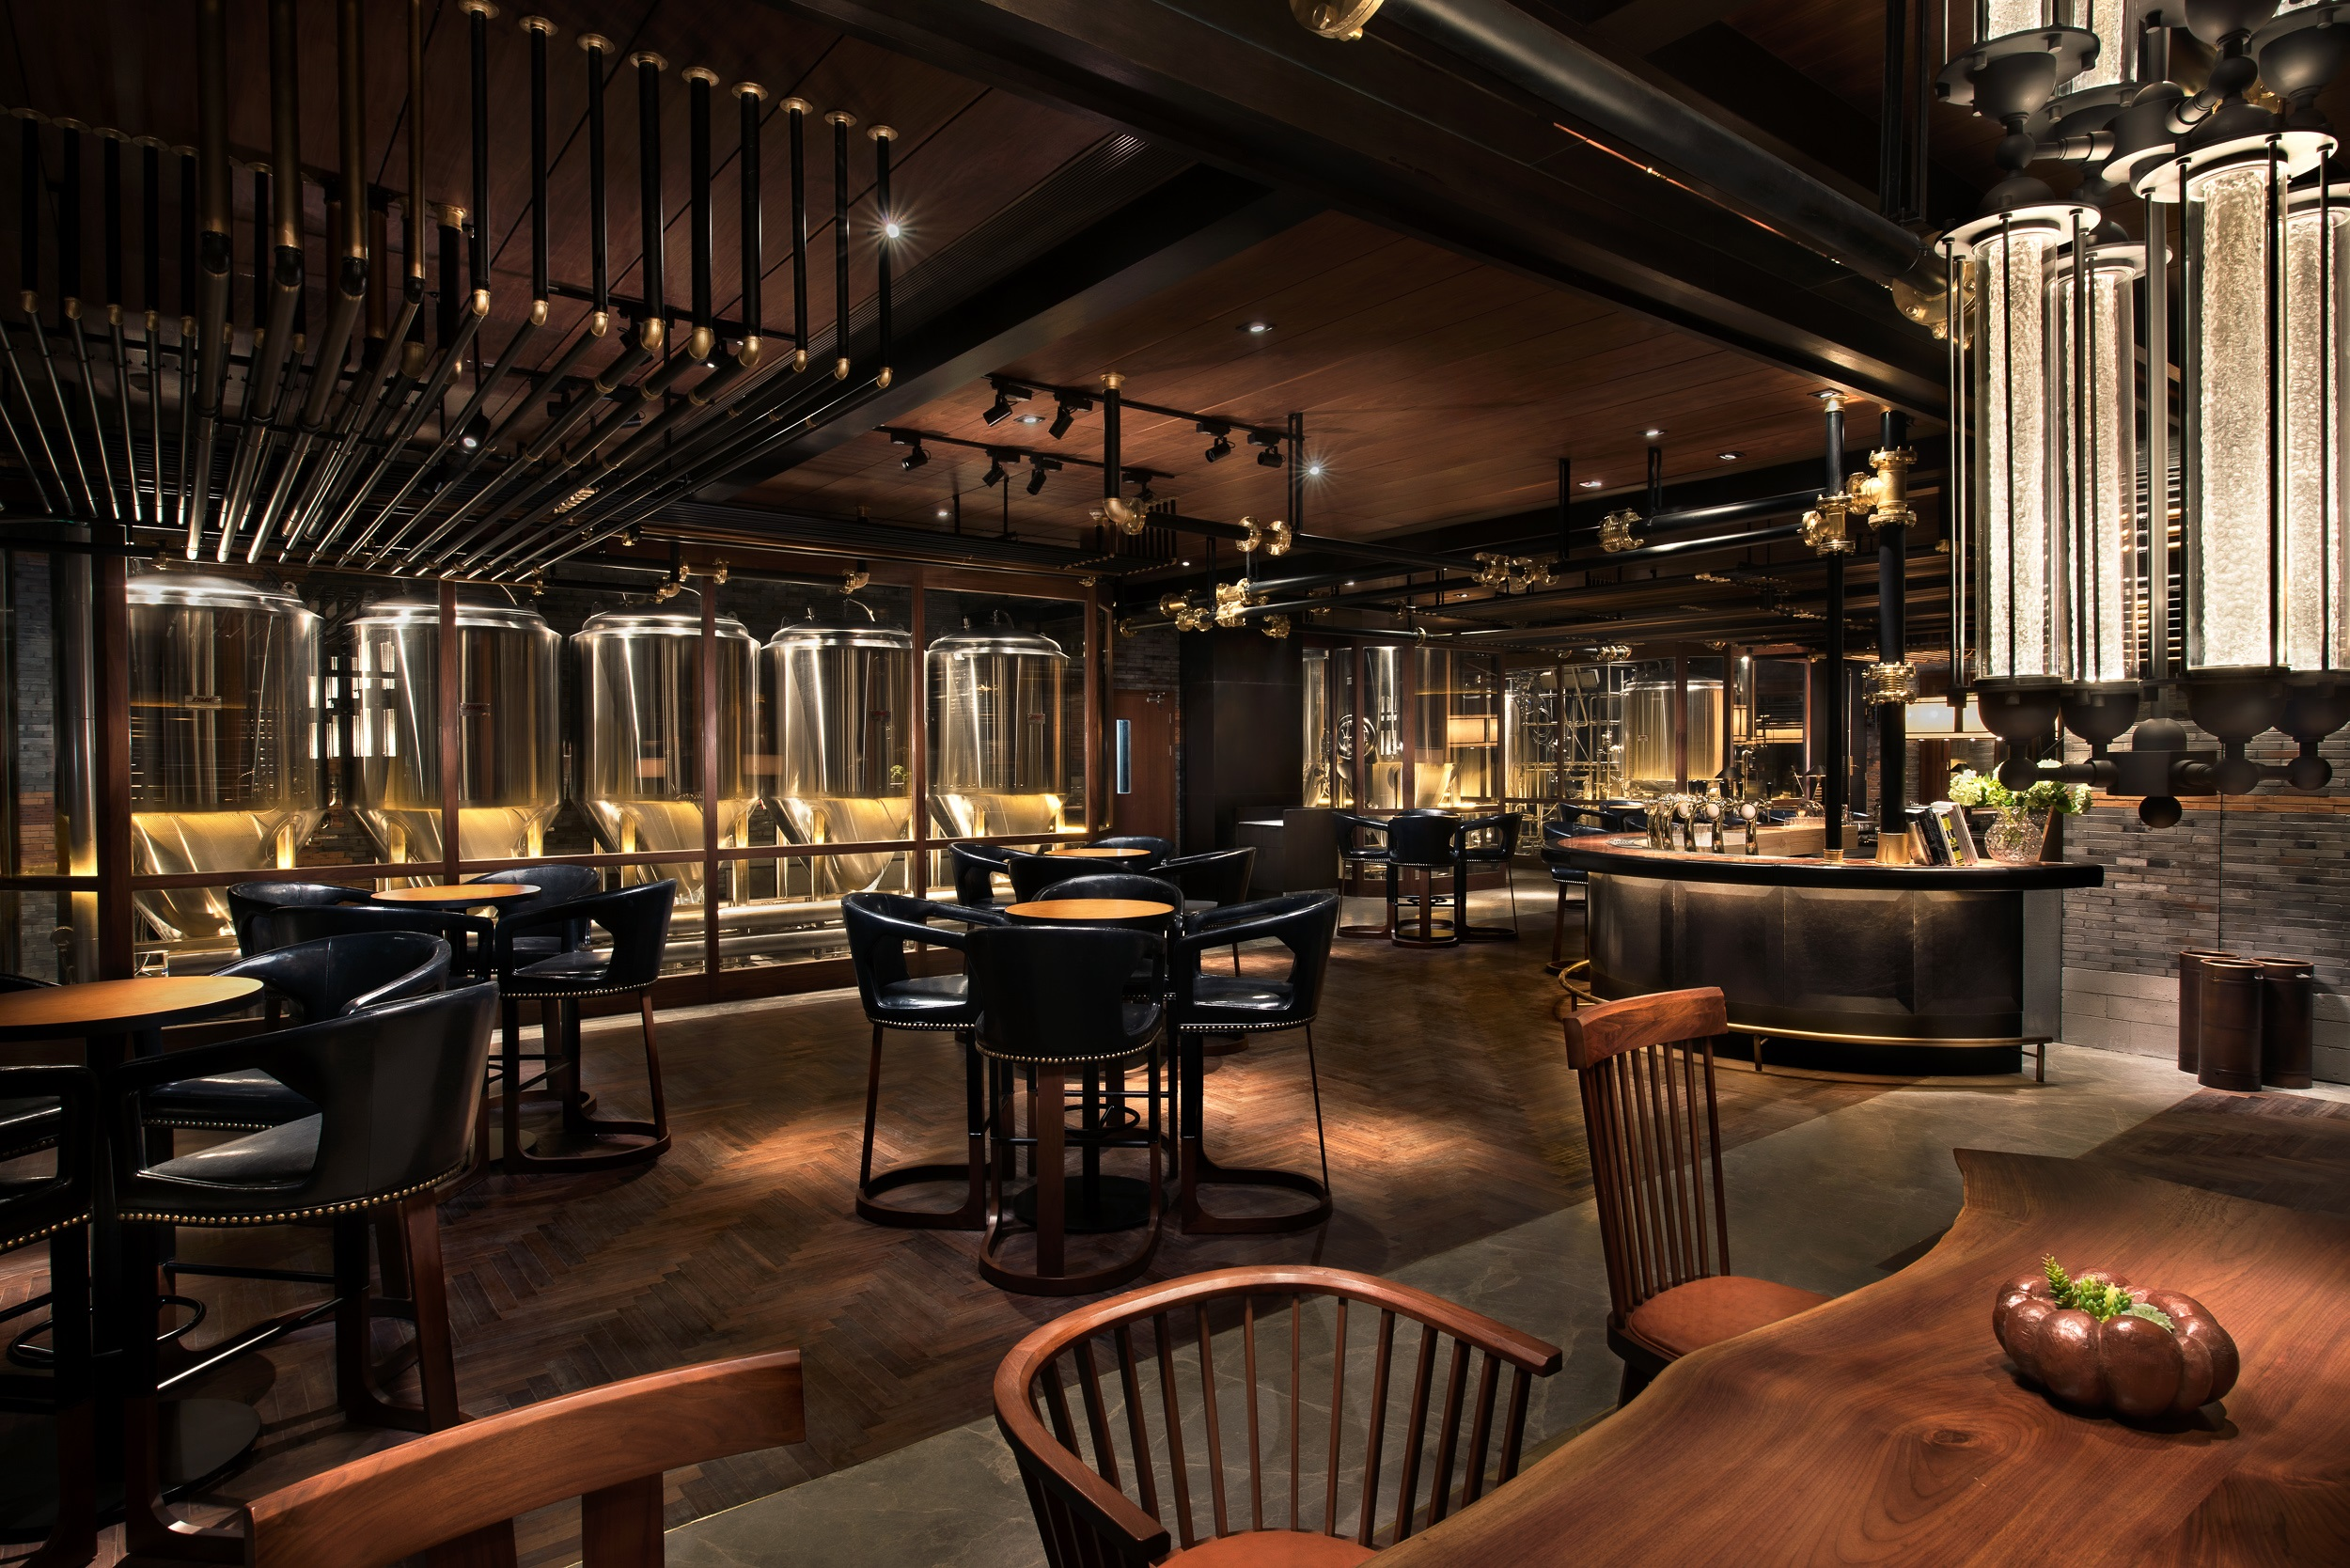 Tan leather and wood makes for a handsome bar design.